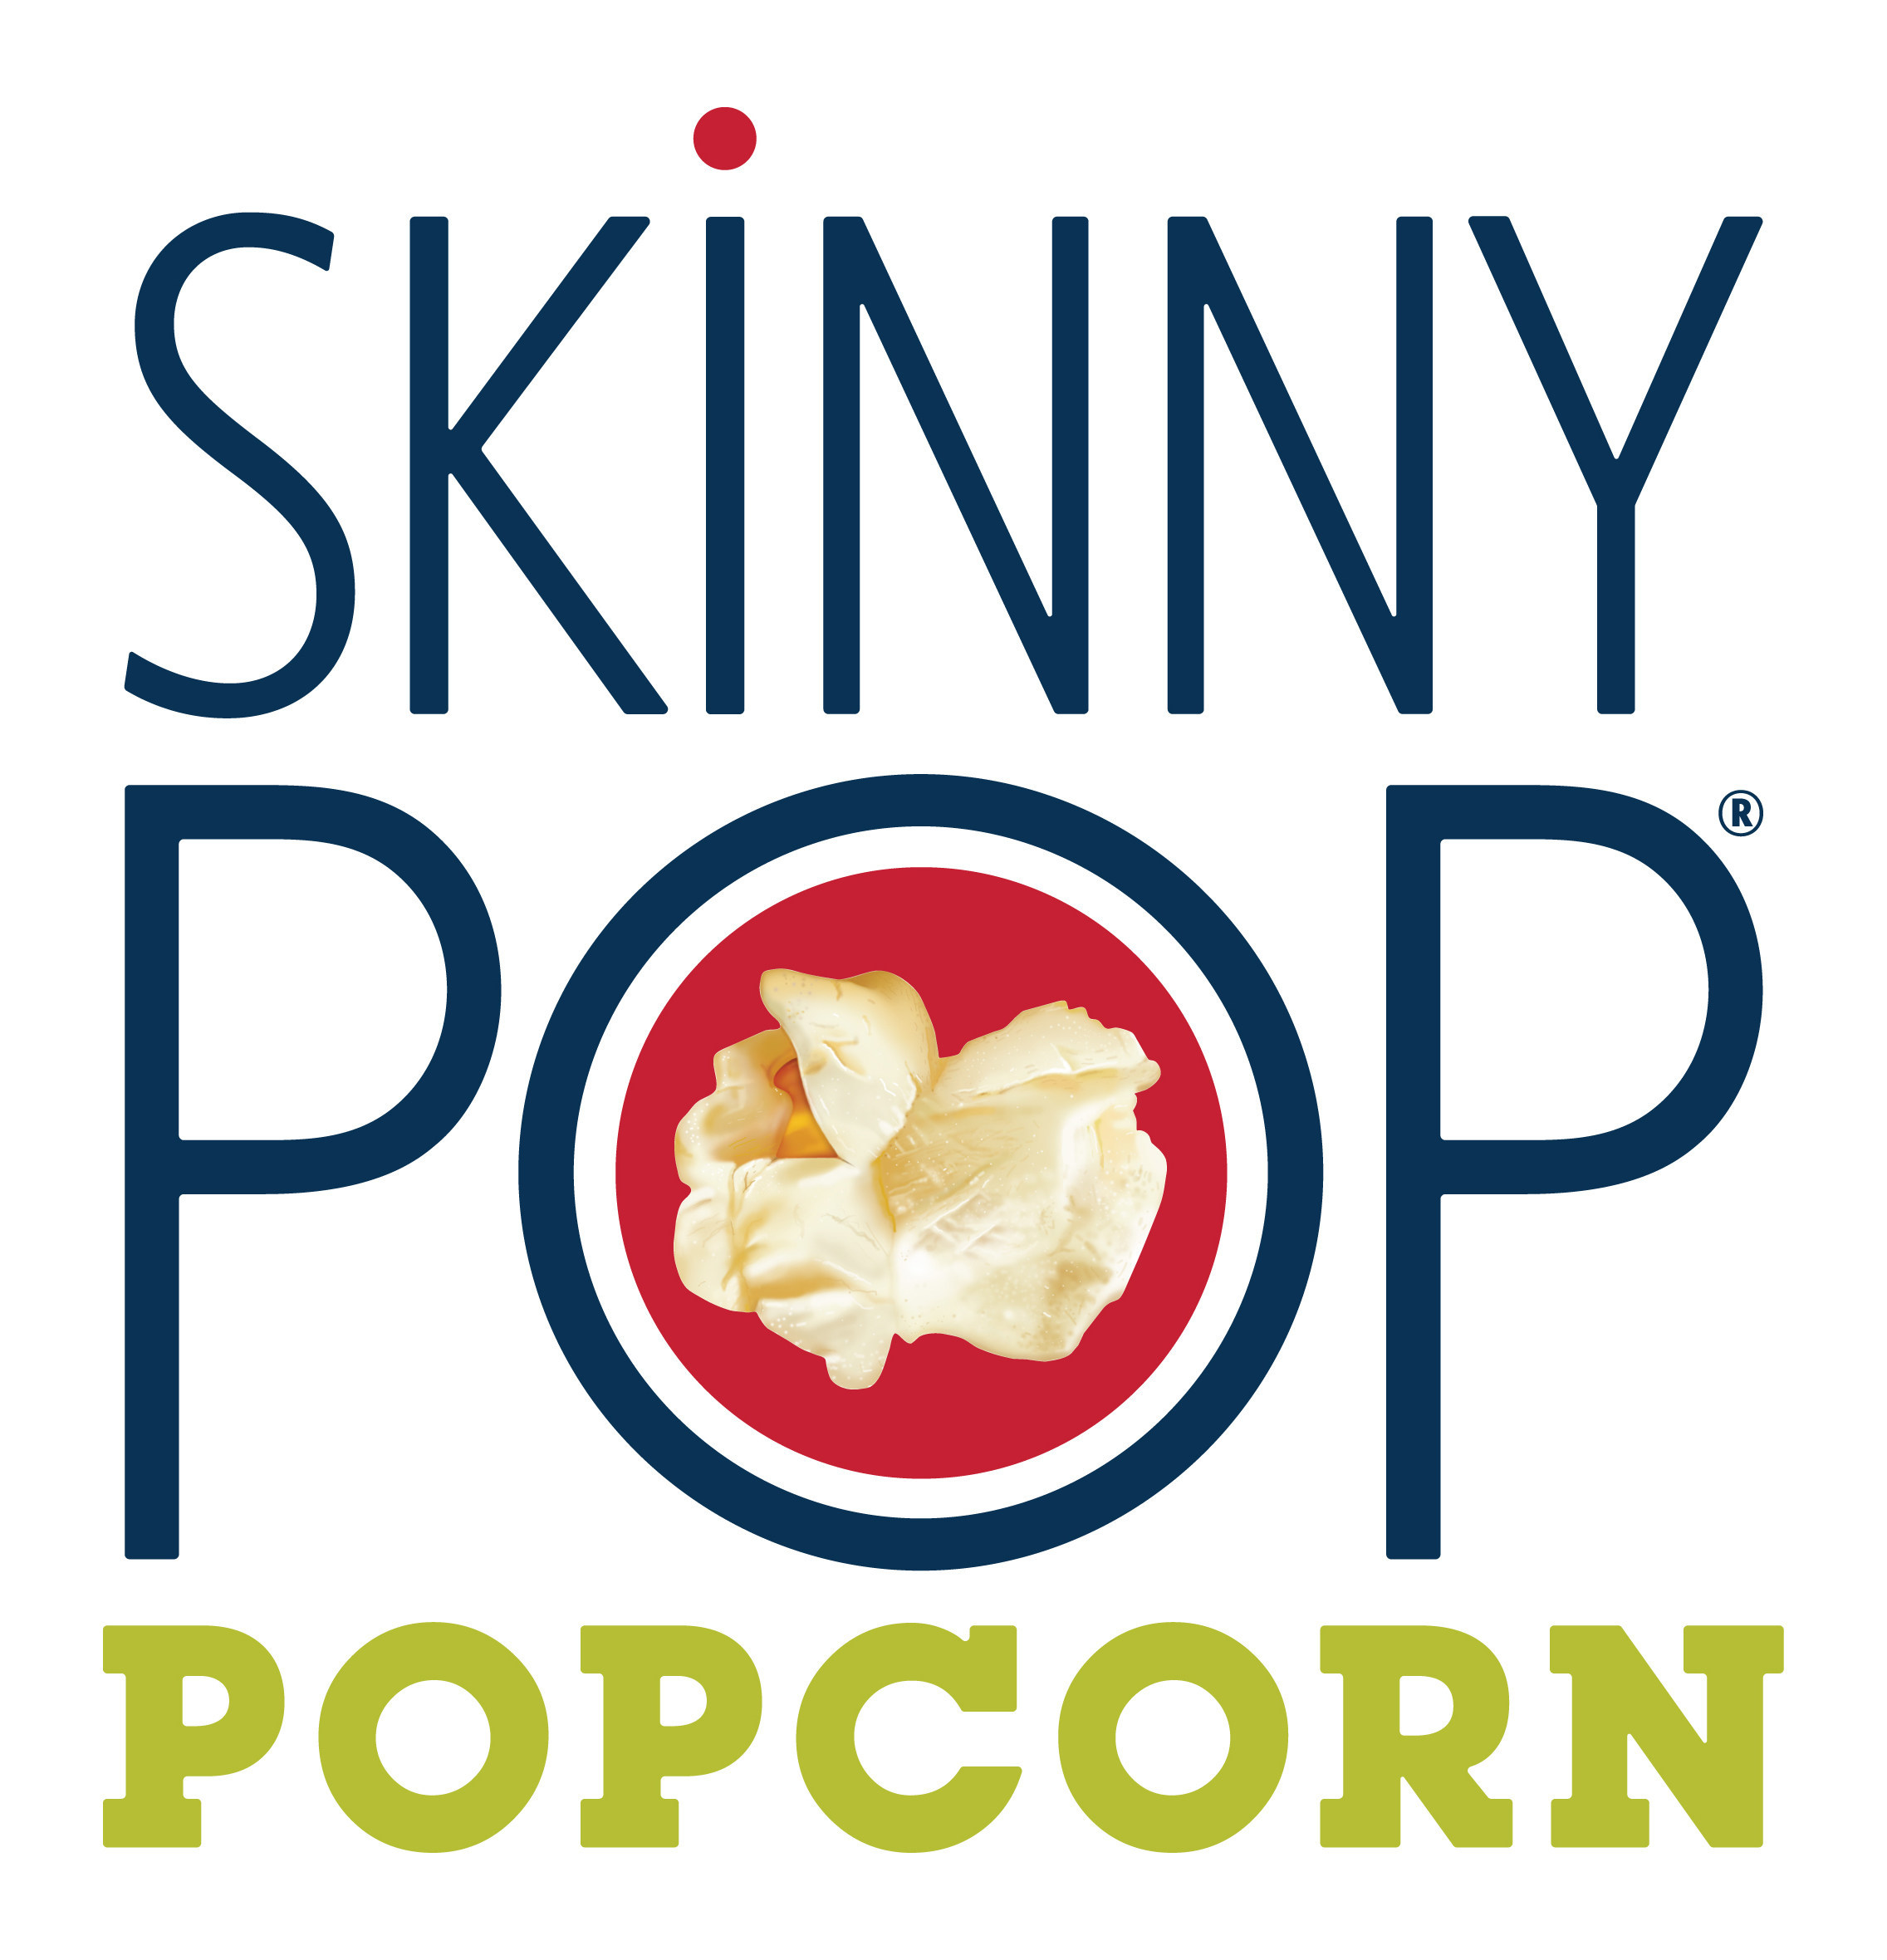 skinnypop launches new microwave popcorn and popcorn cakes